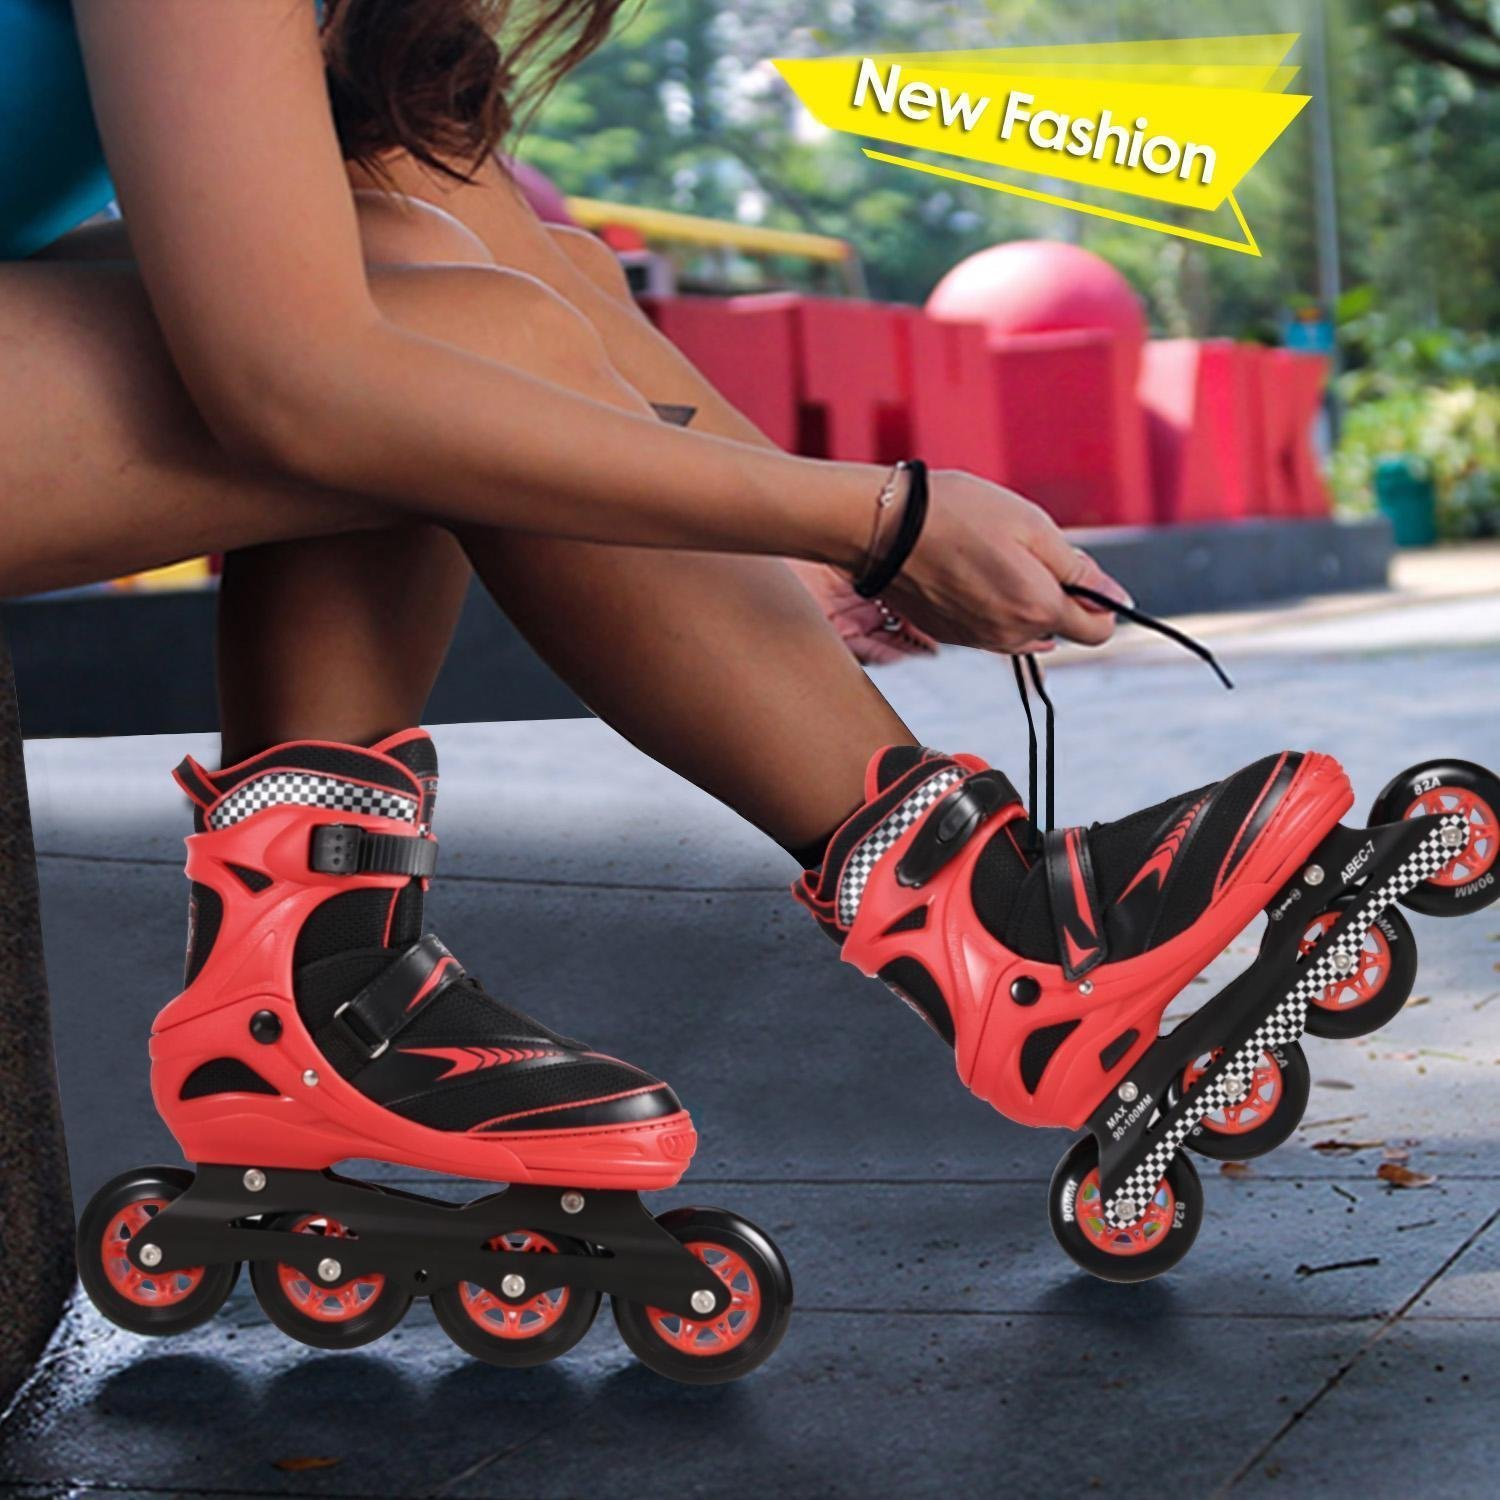 Kaluo Adjustable Inline Skates for Adults and Teens in-line roller skate blades | Non-slip wheels | for Men, Women, Boys, Girls(US Stock) (Type 2-Black&red, Type 2-L-US 5-8)